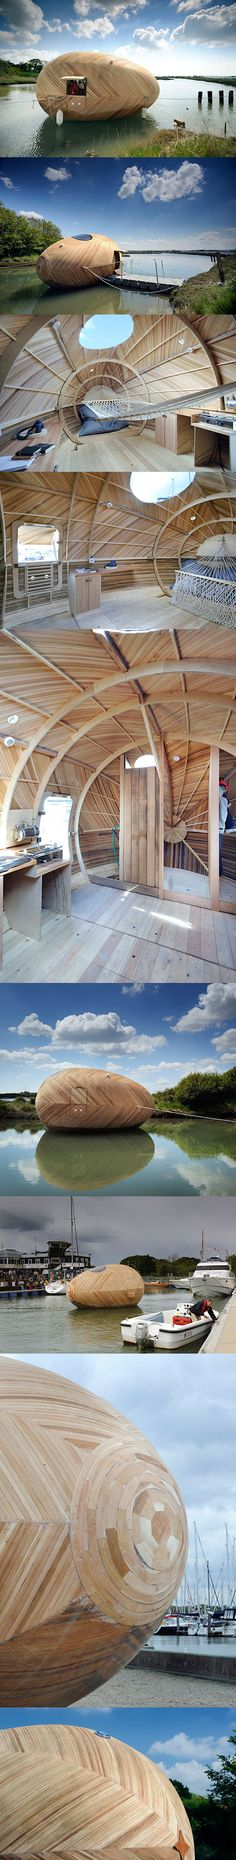 SPUD Group, PAD Studio and designer Stephen Turner have collaborated to create a space that can be tested out as a small shelter to stay in and use as a 'lab' for one year. The Exbury Egg, as they have titled it, was constructed with boat building techniques and houses only the essentials. A small stove, shower, desk and bed/hammock are there; while any means of electricity will all come from solar power.